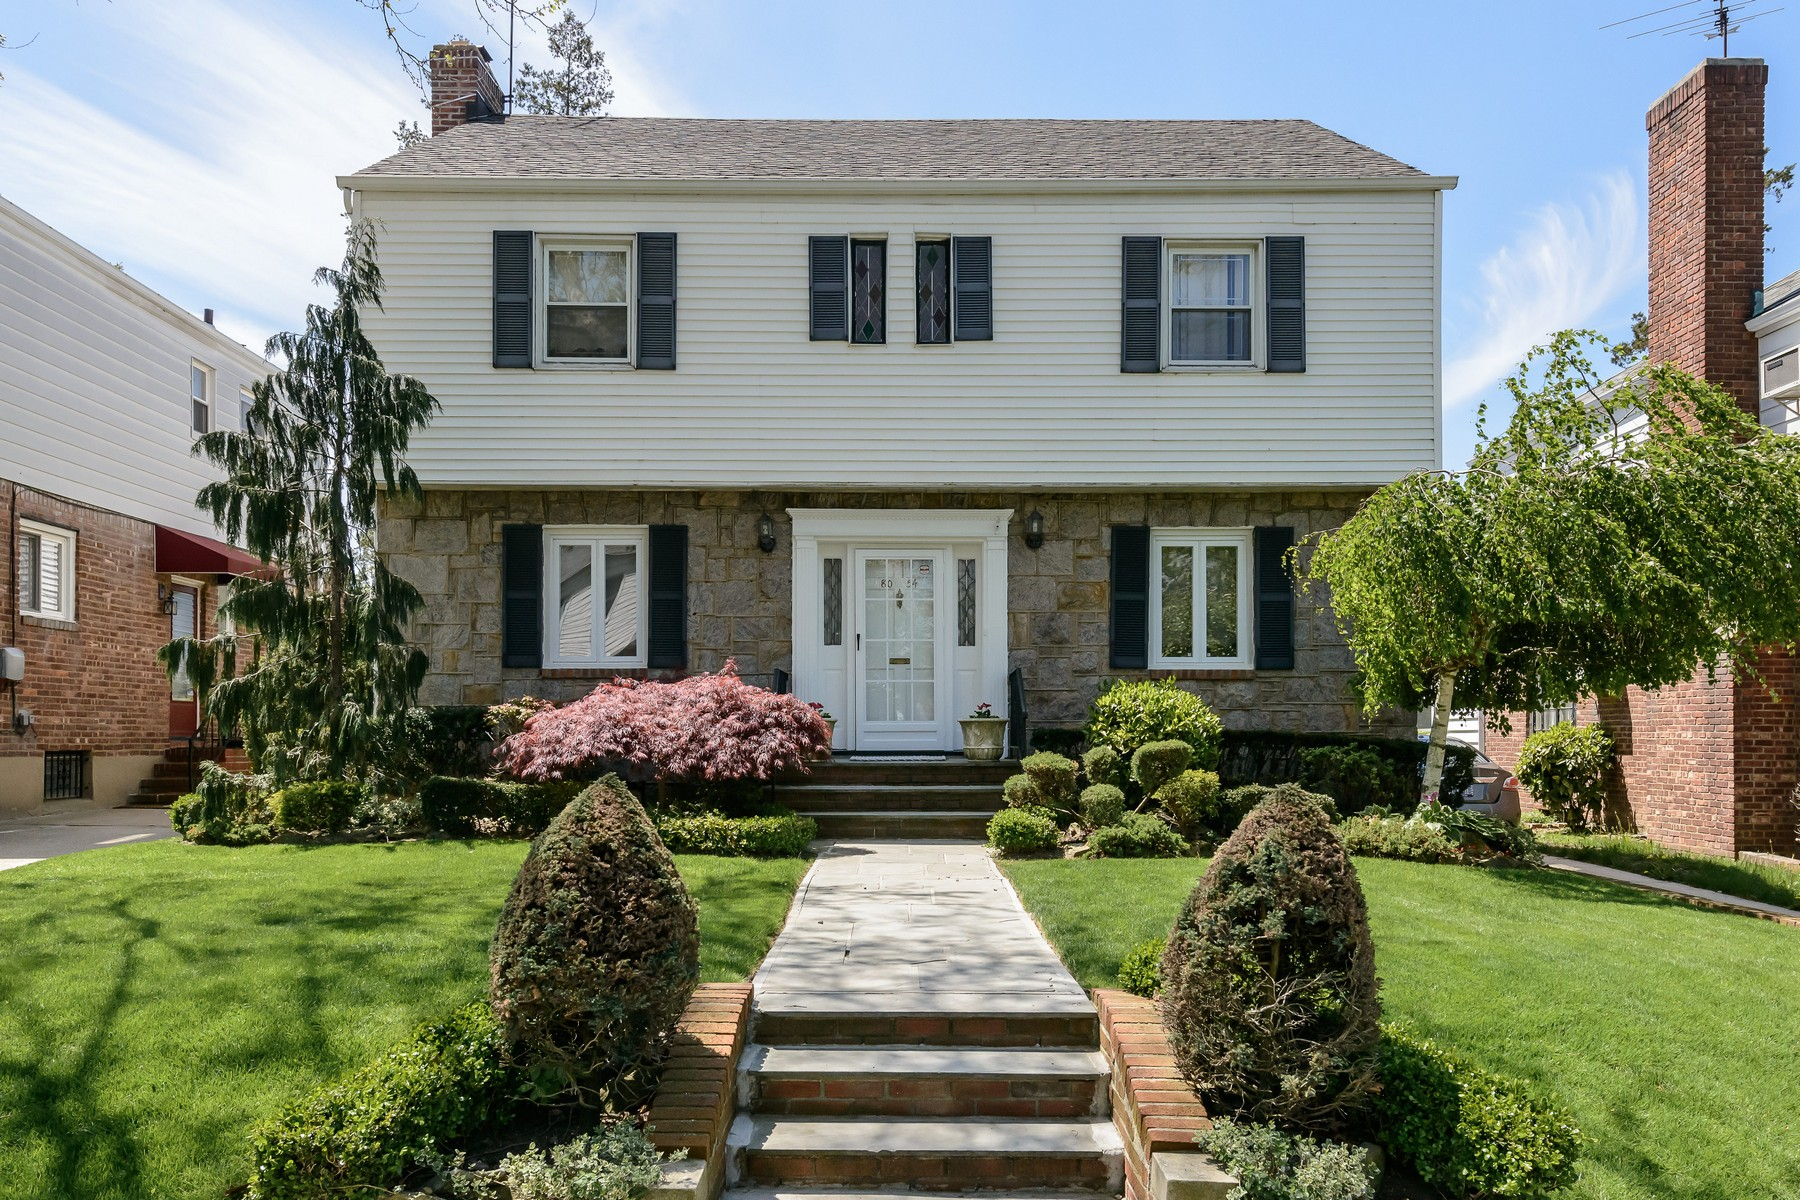 Single Family Home for Sale at Colonial 80-54 212th St Queens Village, New York 11427 United States